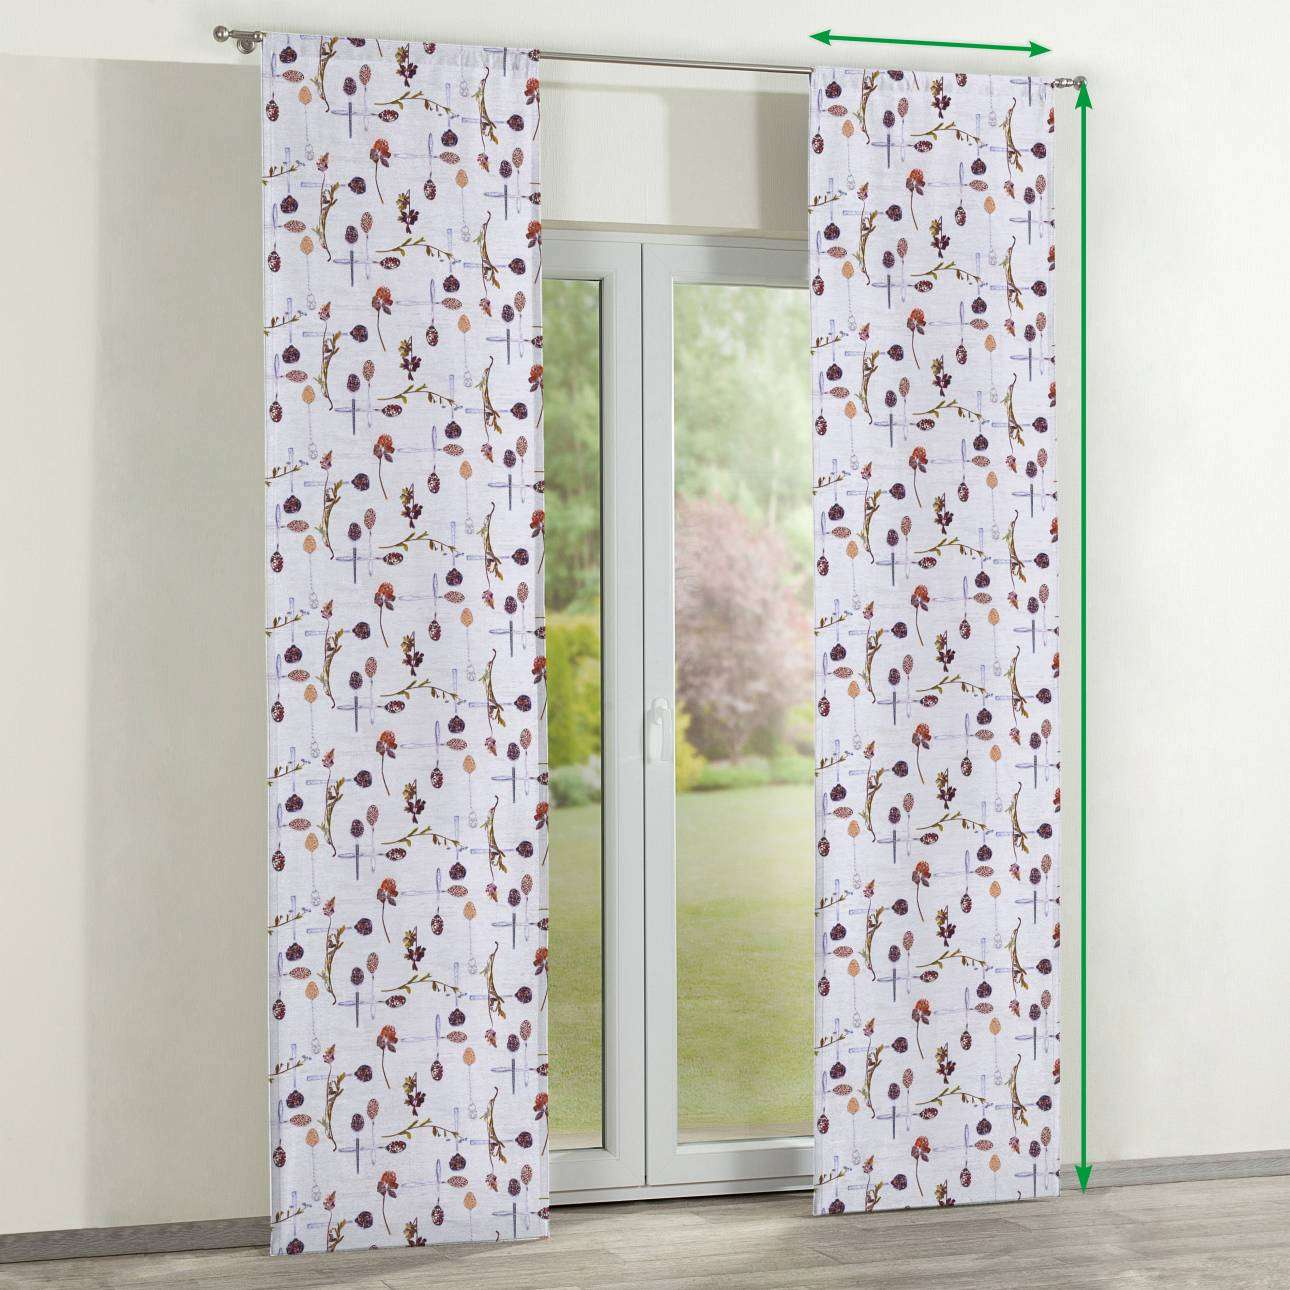 Slot panel curtains – Set of 2 in collection Flowers, fabric: 140-11